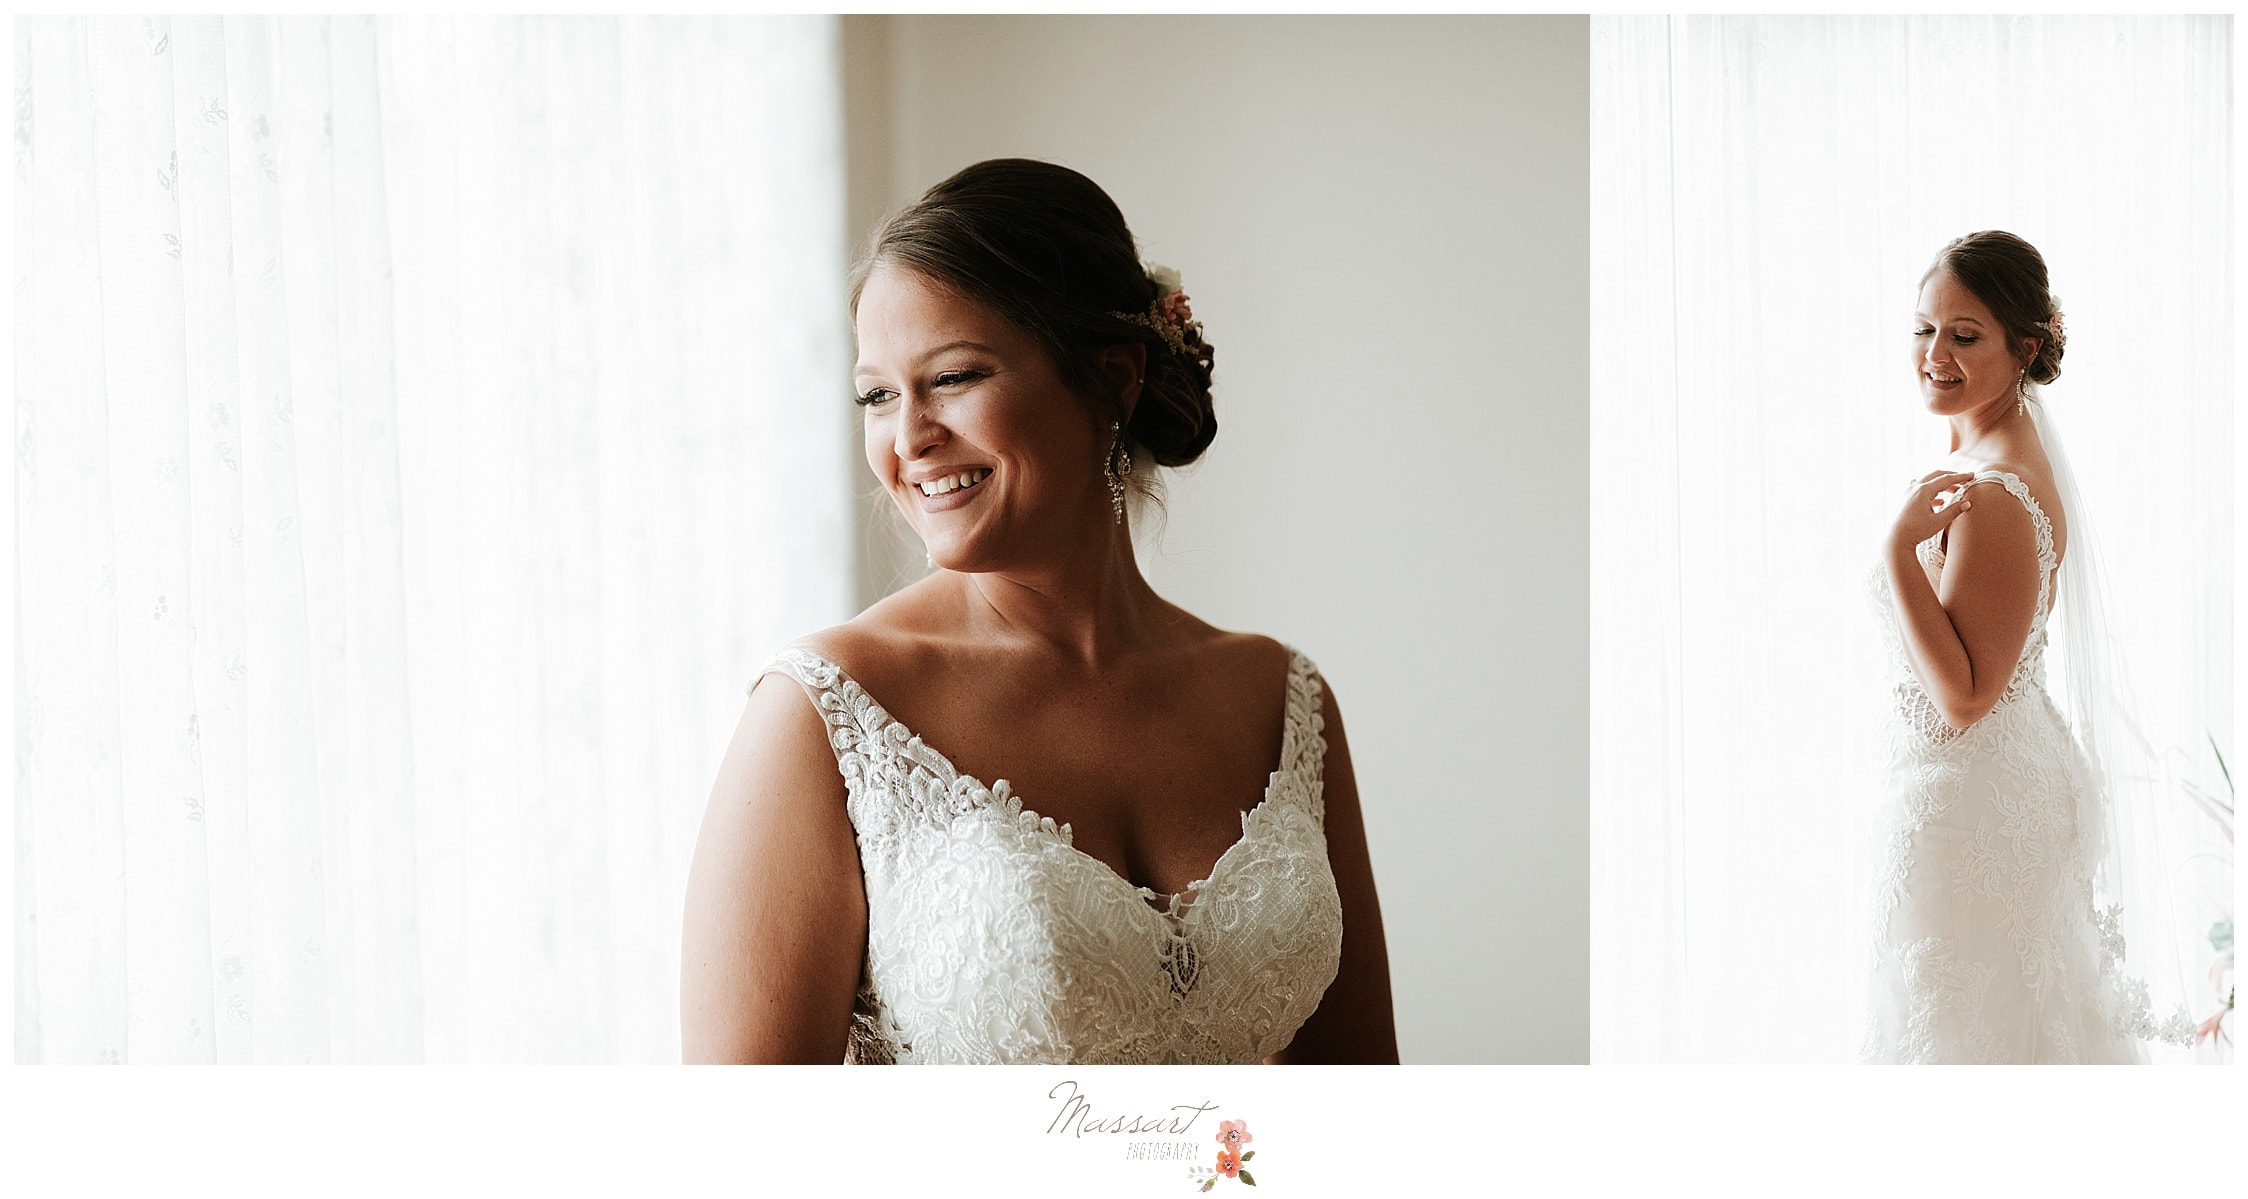 Gorgeous bride in lace wedding gown from Alexandria's Bridal photographed by MA wedding photographers Massart Photography